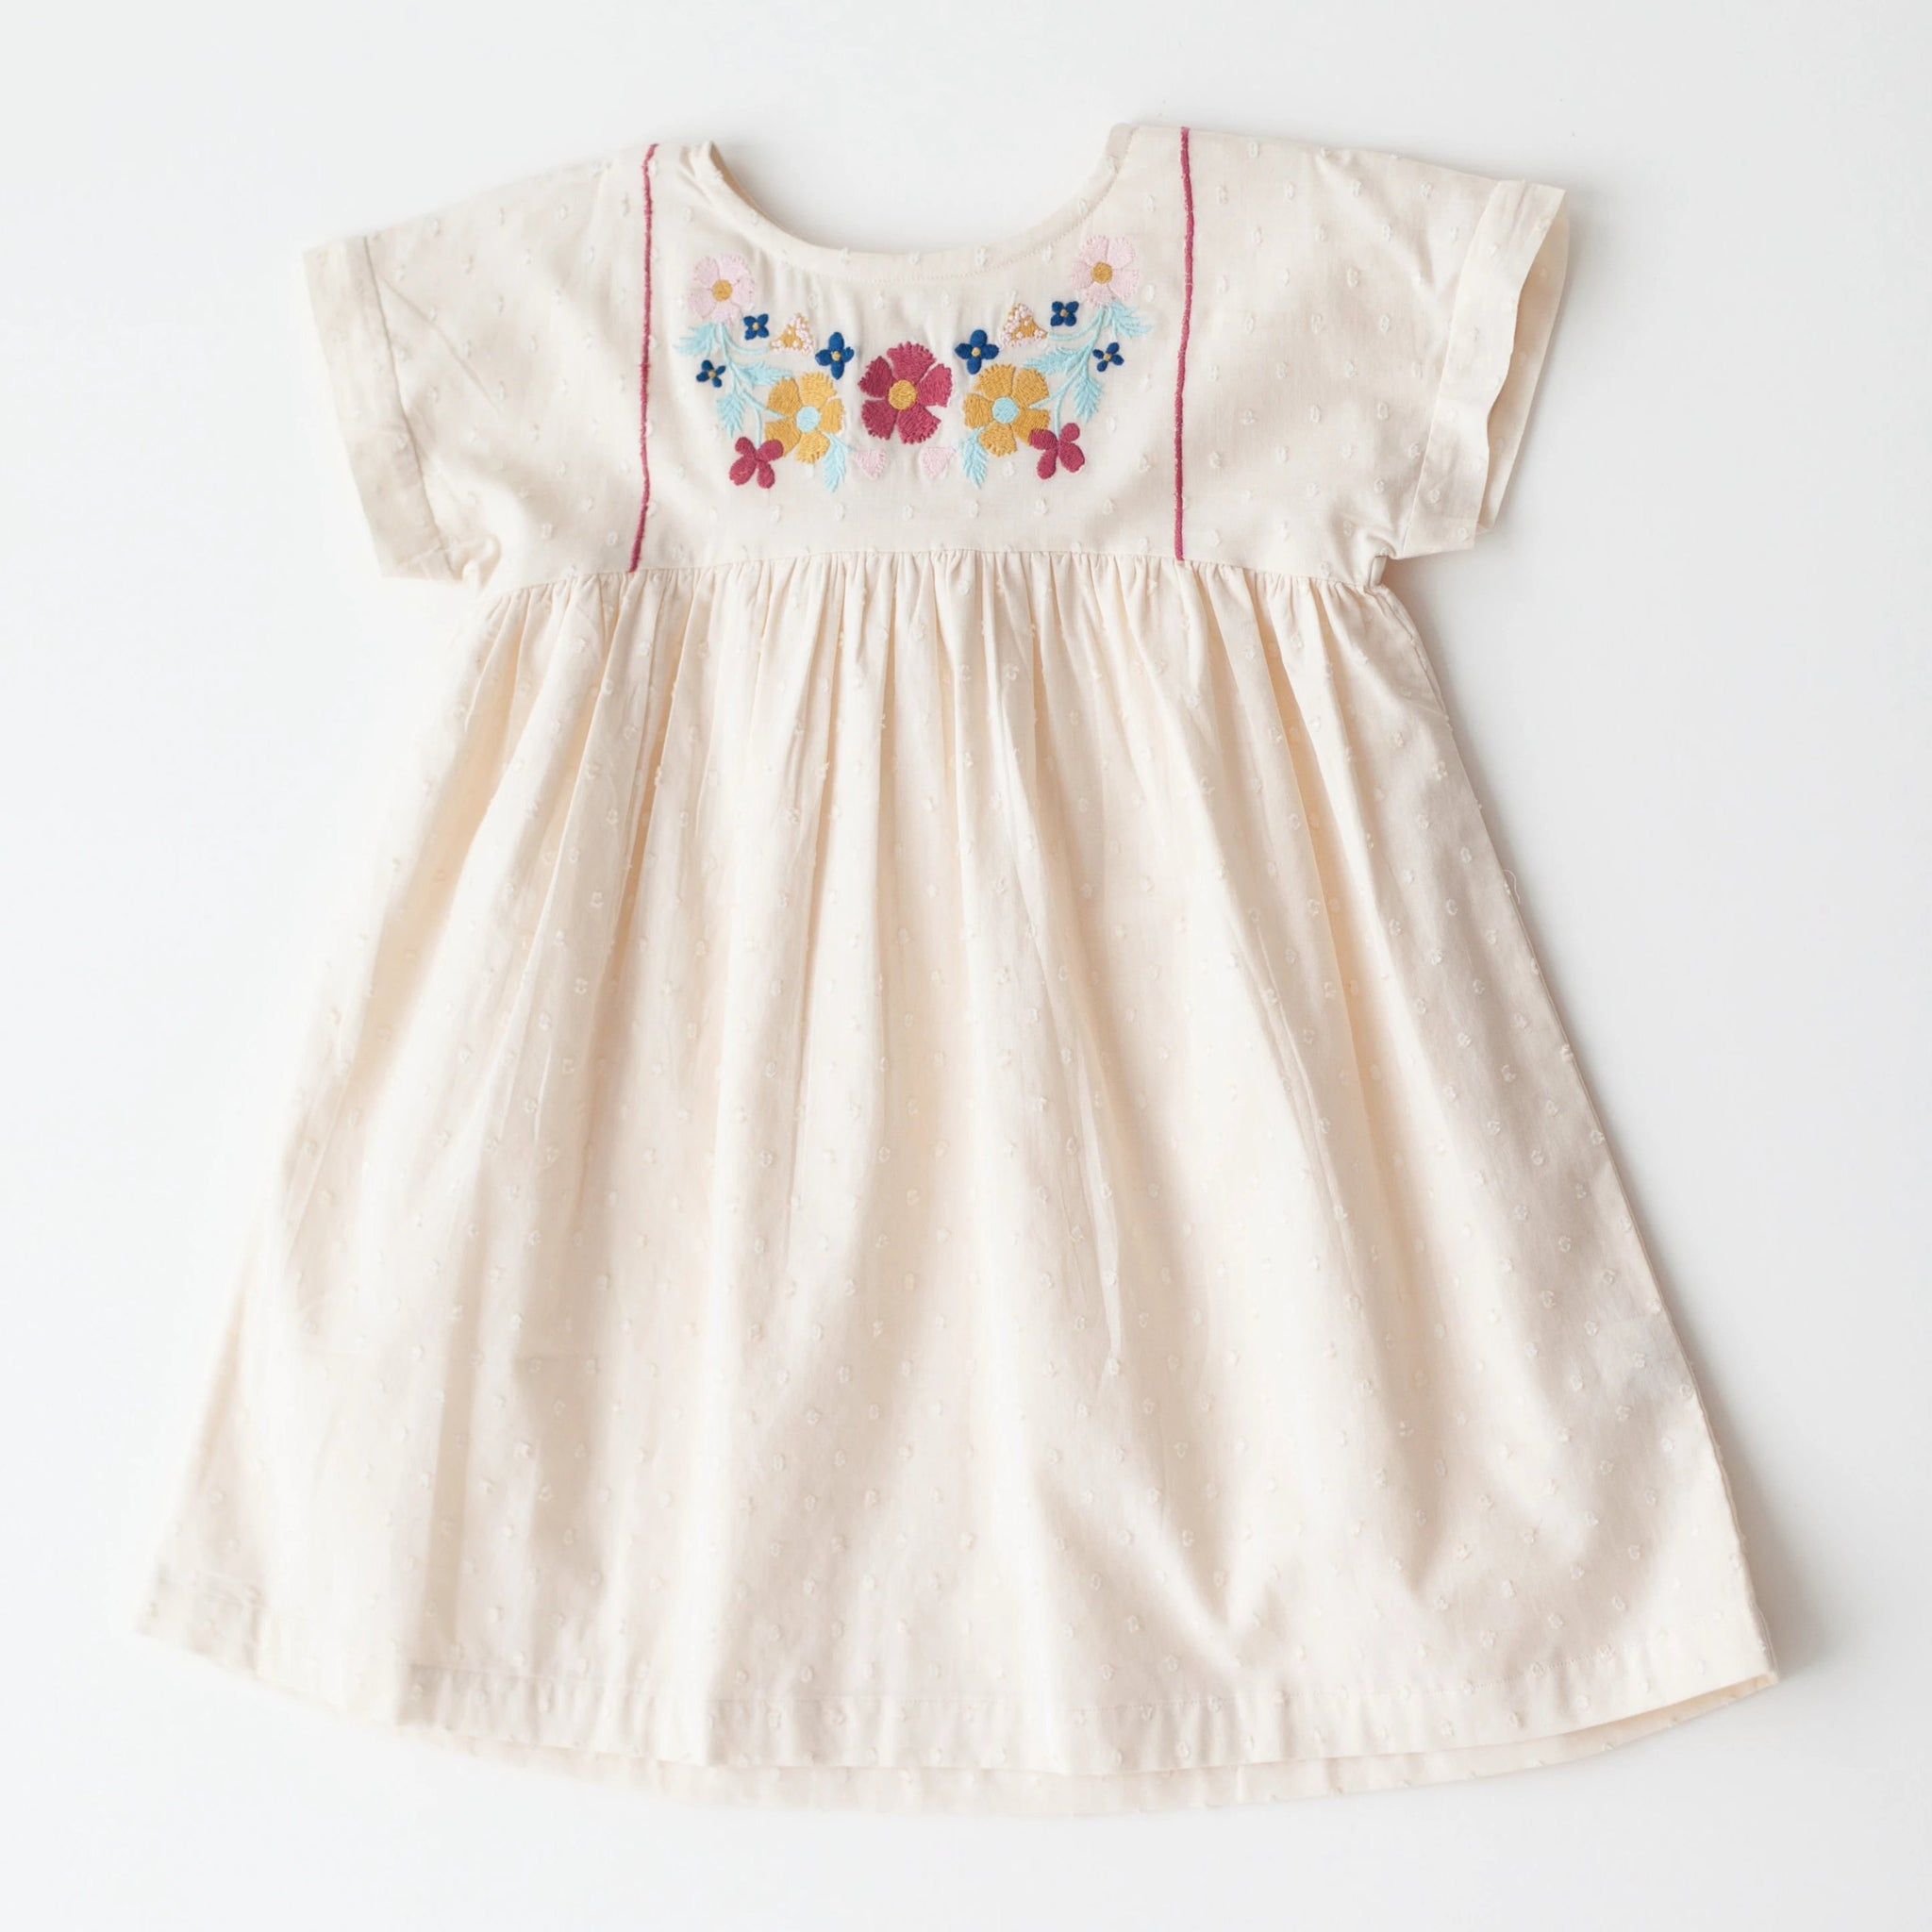 Gooseberry Dress - White Embroidery